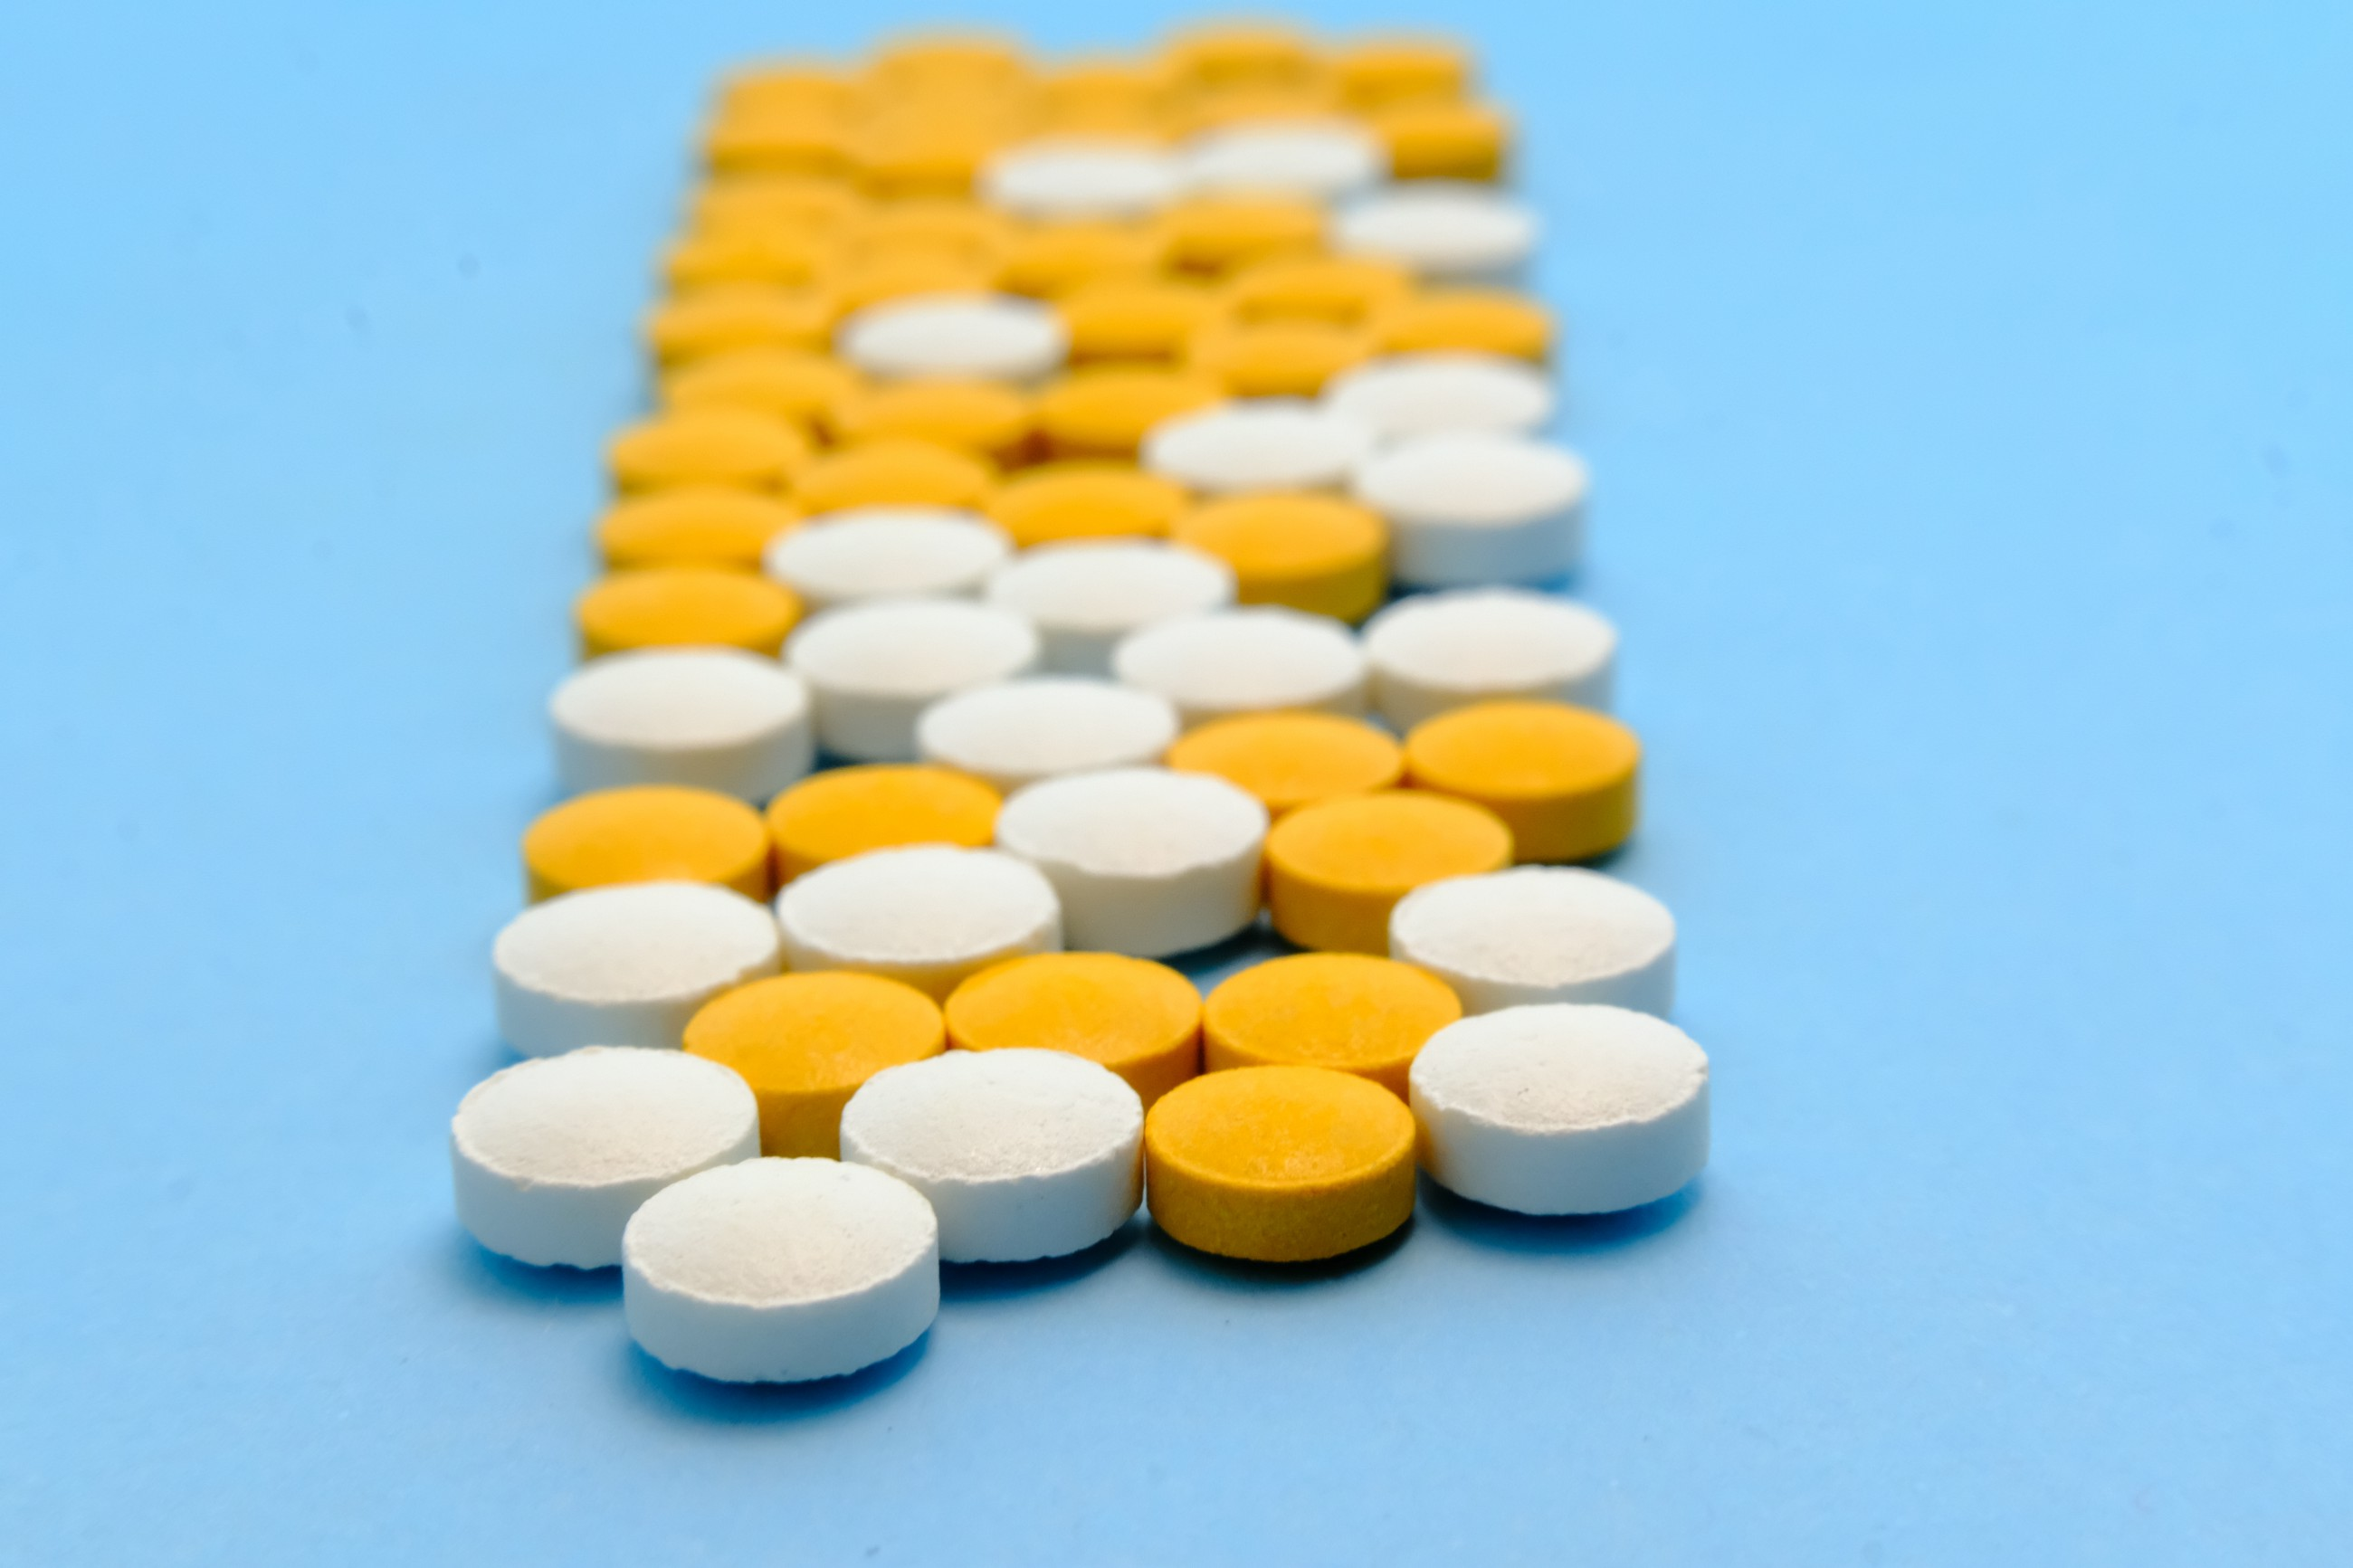 The Safe Way to Go Off Antidepressants